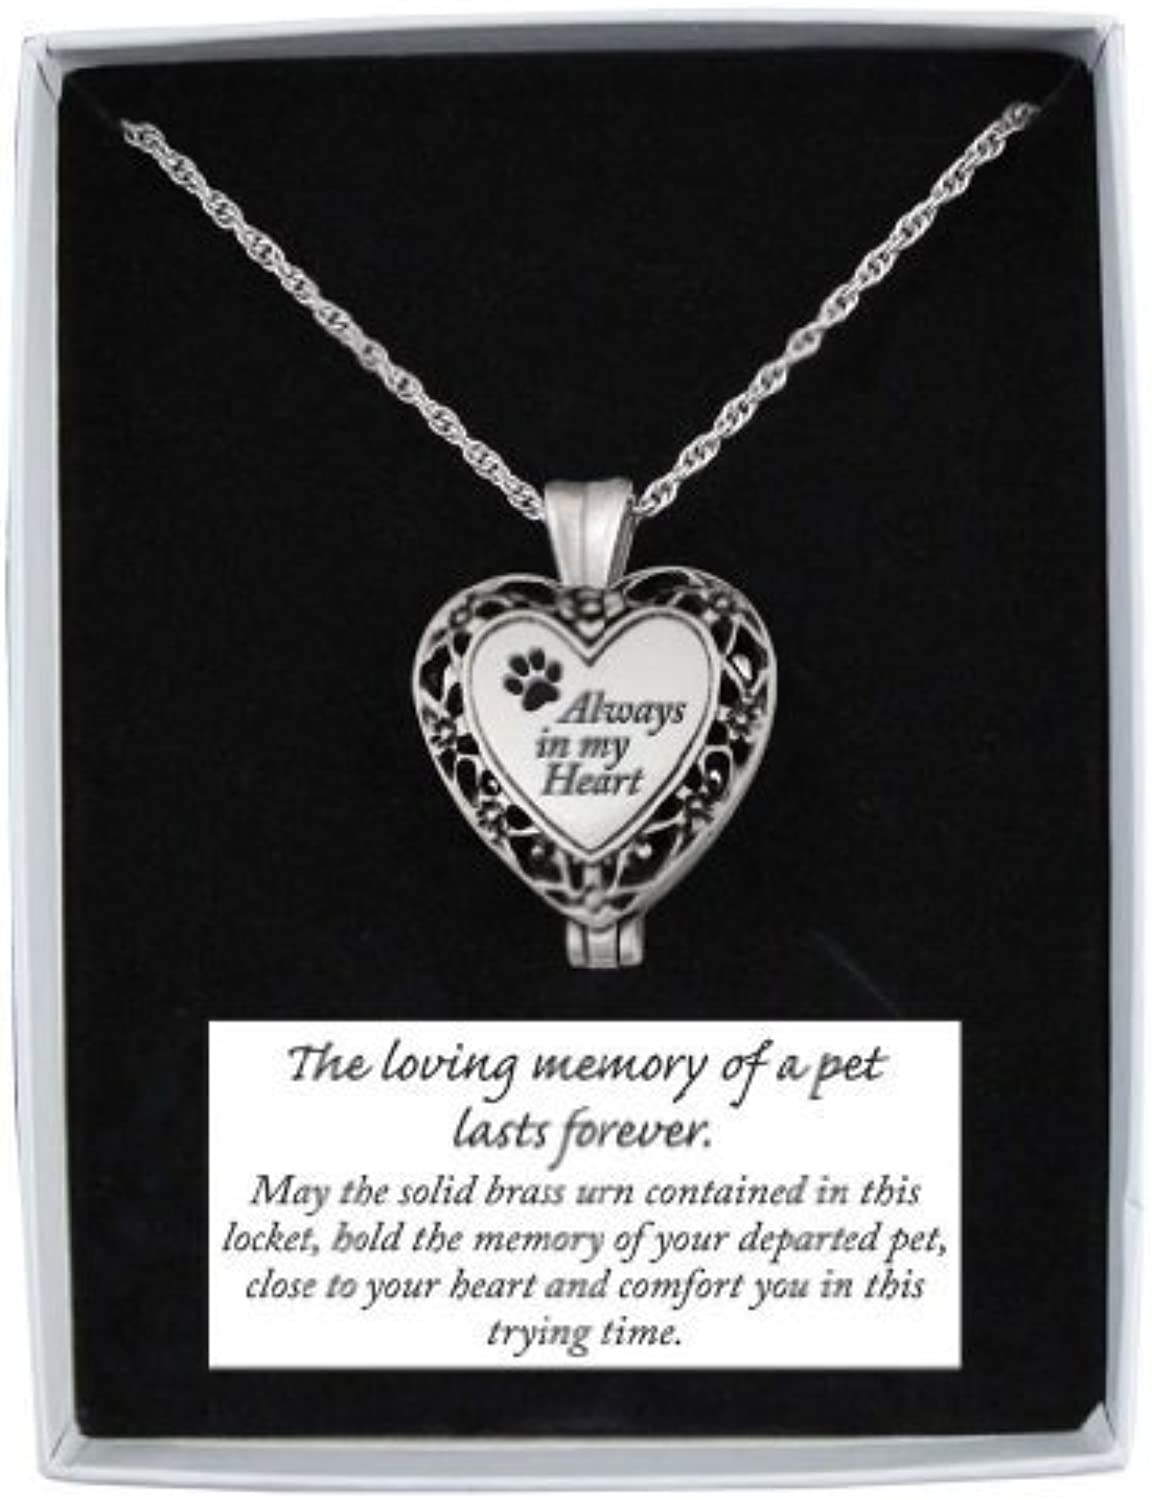 Cathedral Art Pet Memorial Urn Locketheart Shapedsilver Tone Filigree by Cathedral Art